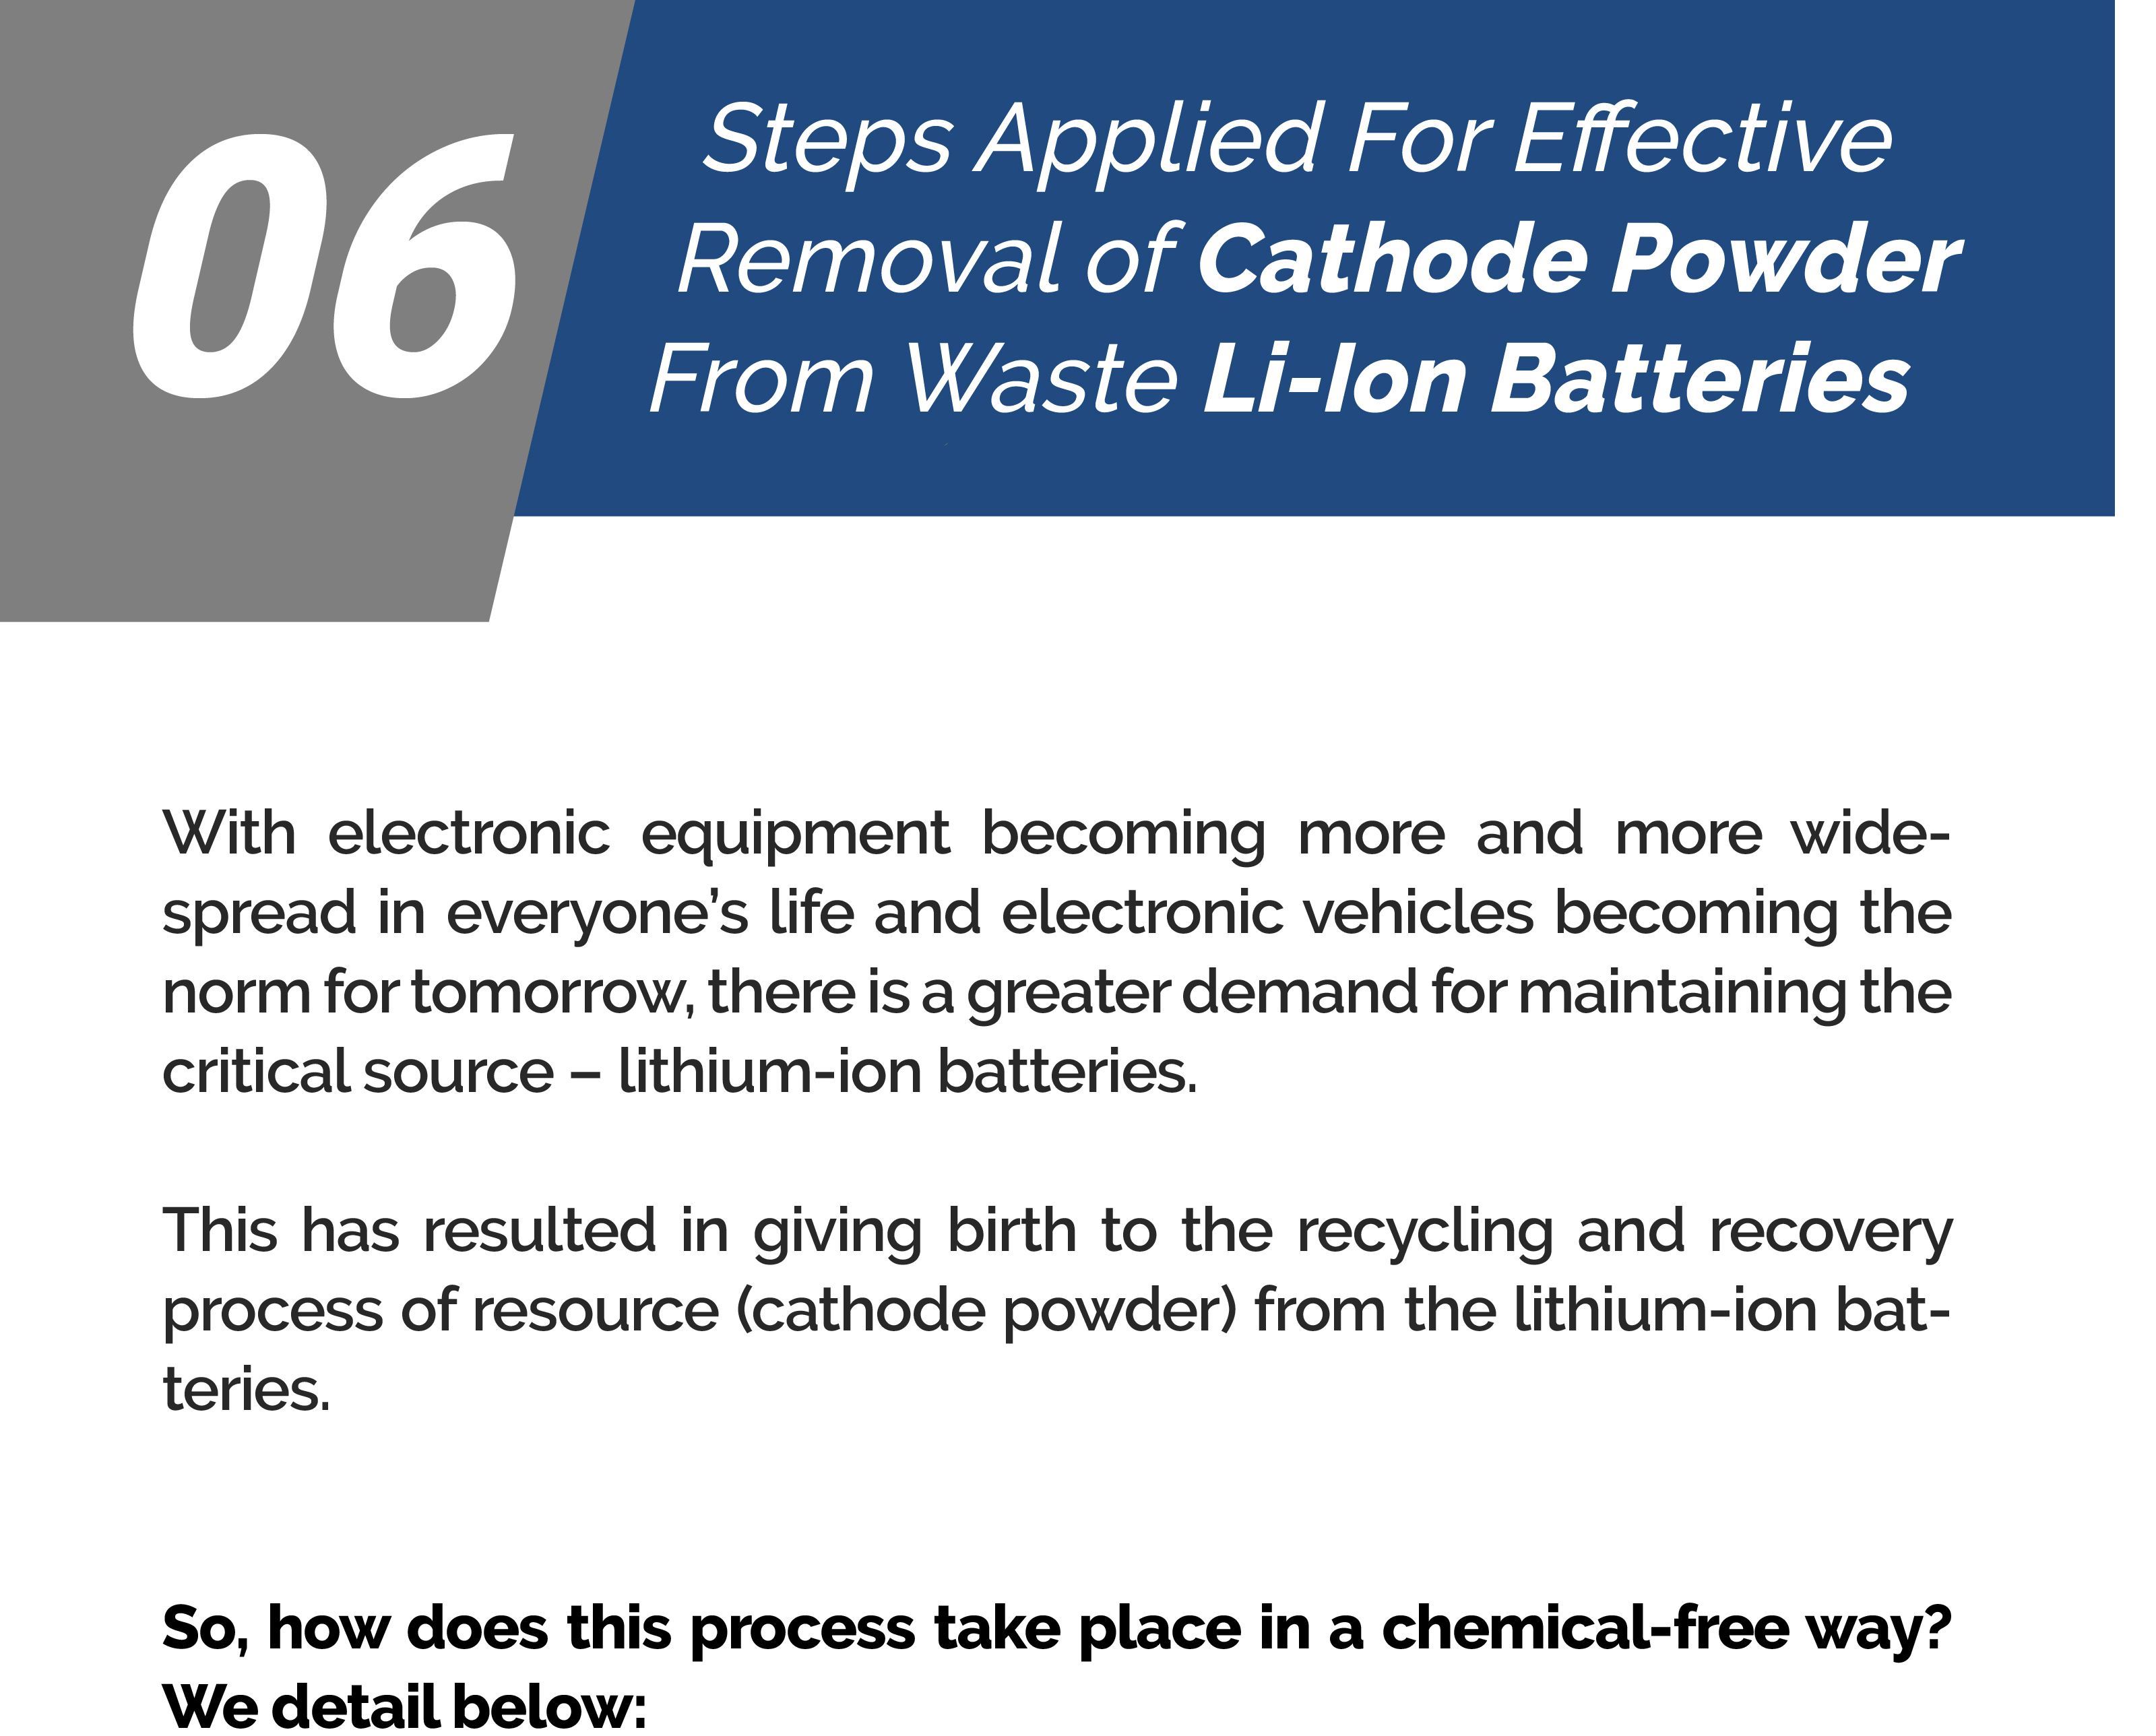 06 Steps Applied For Effective Removal Of Cathode Powder From Waste Li-Ion Batteries